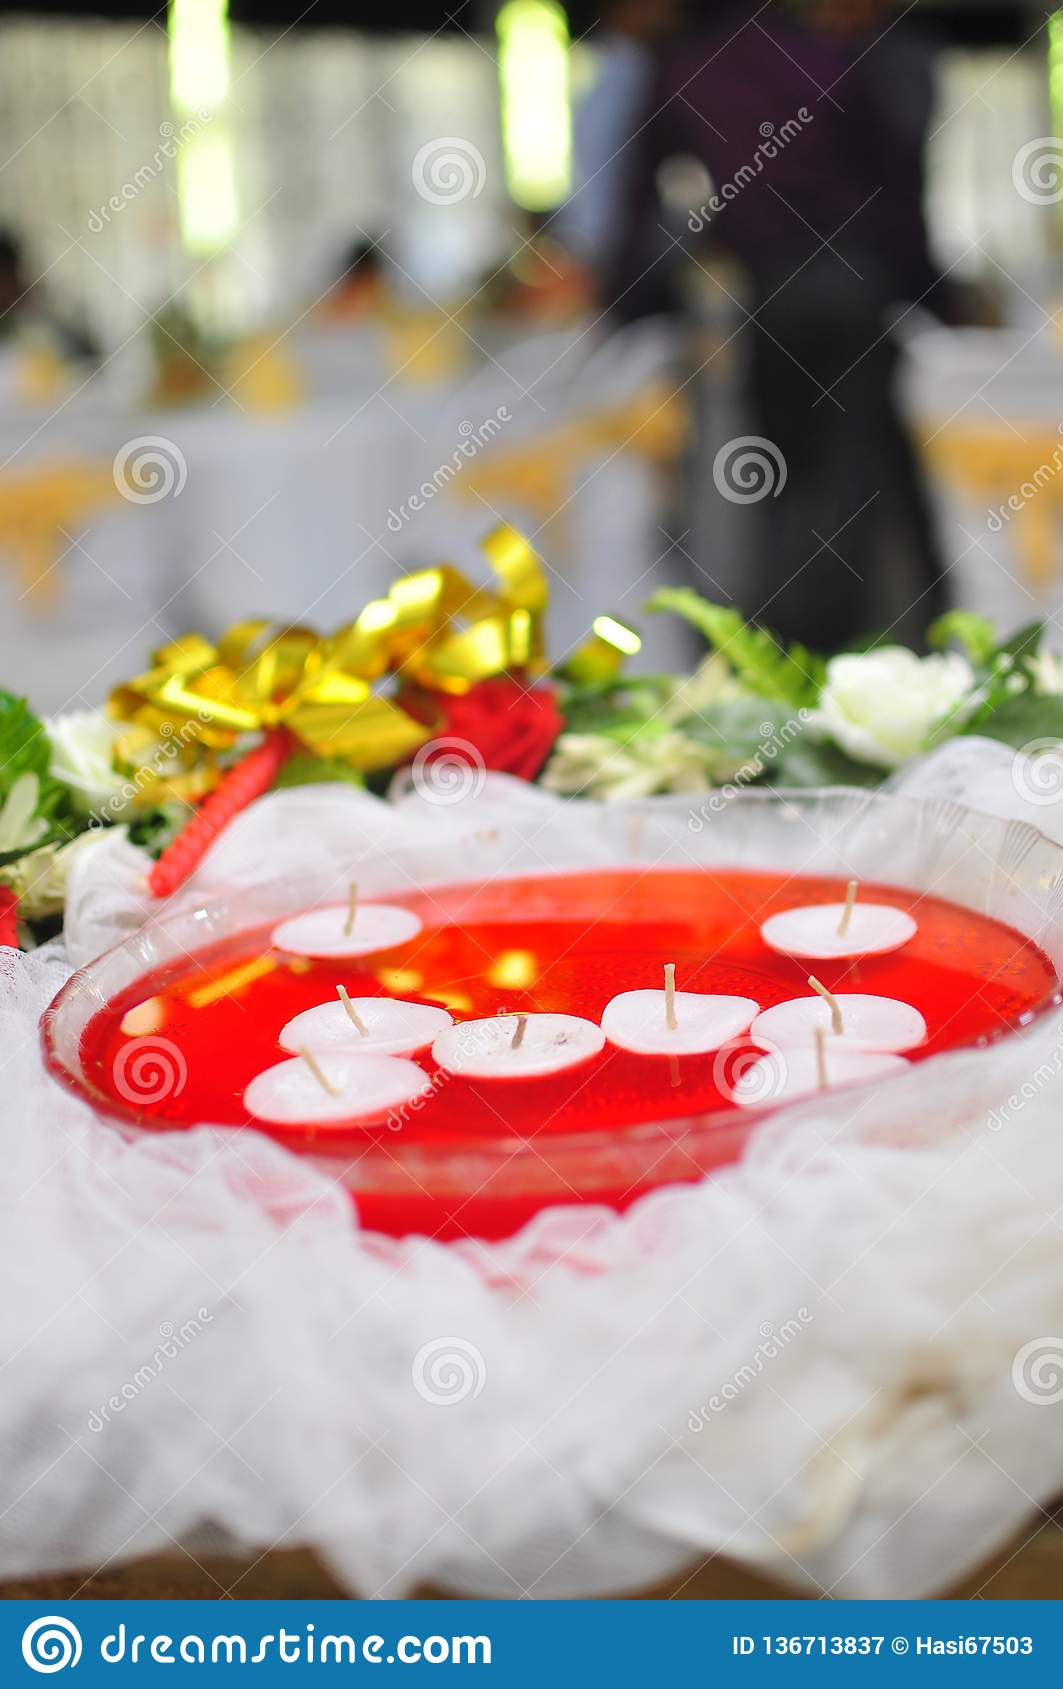 Wedding Decorations Stock Image Image Of Lankan Traditional